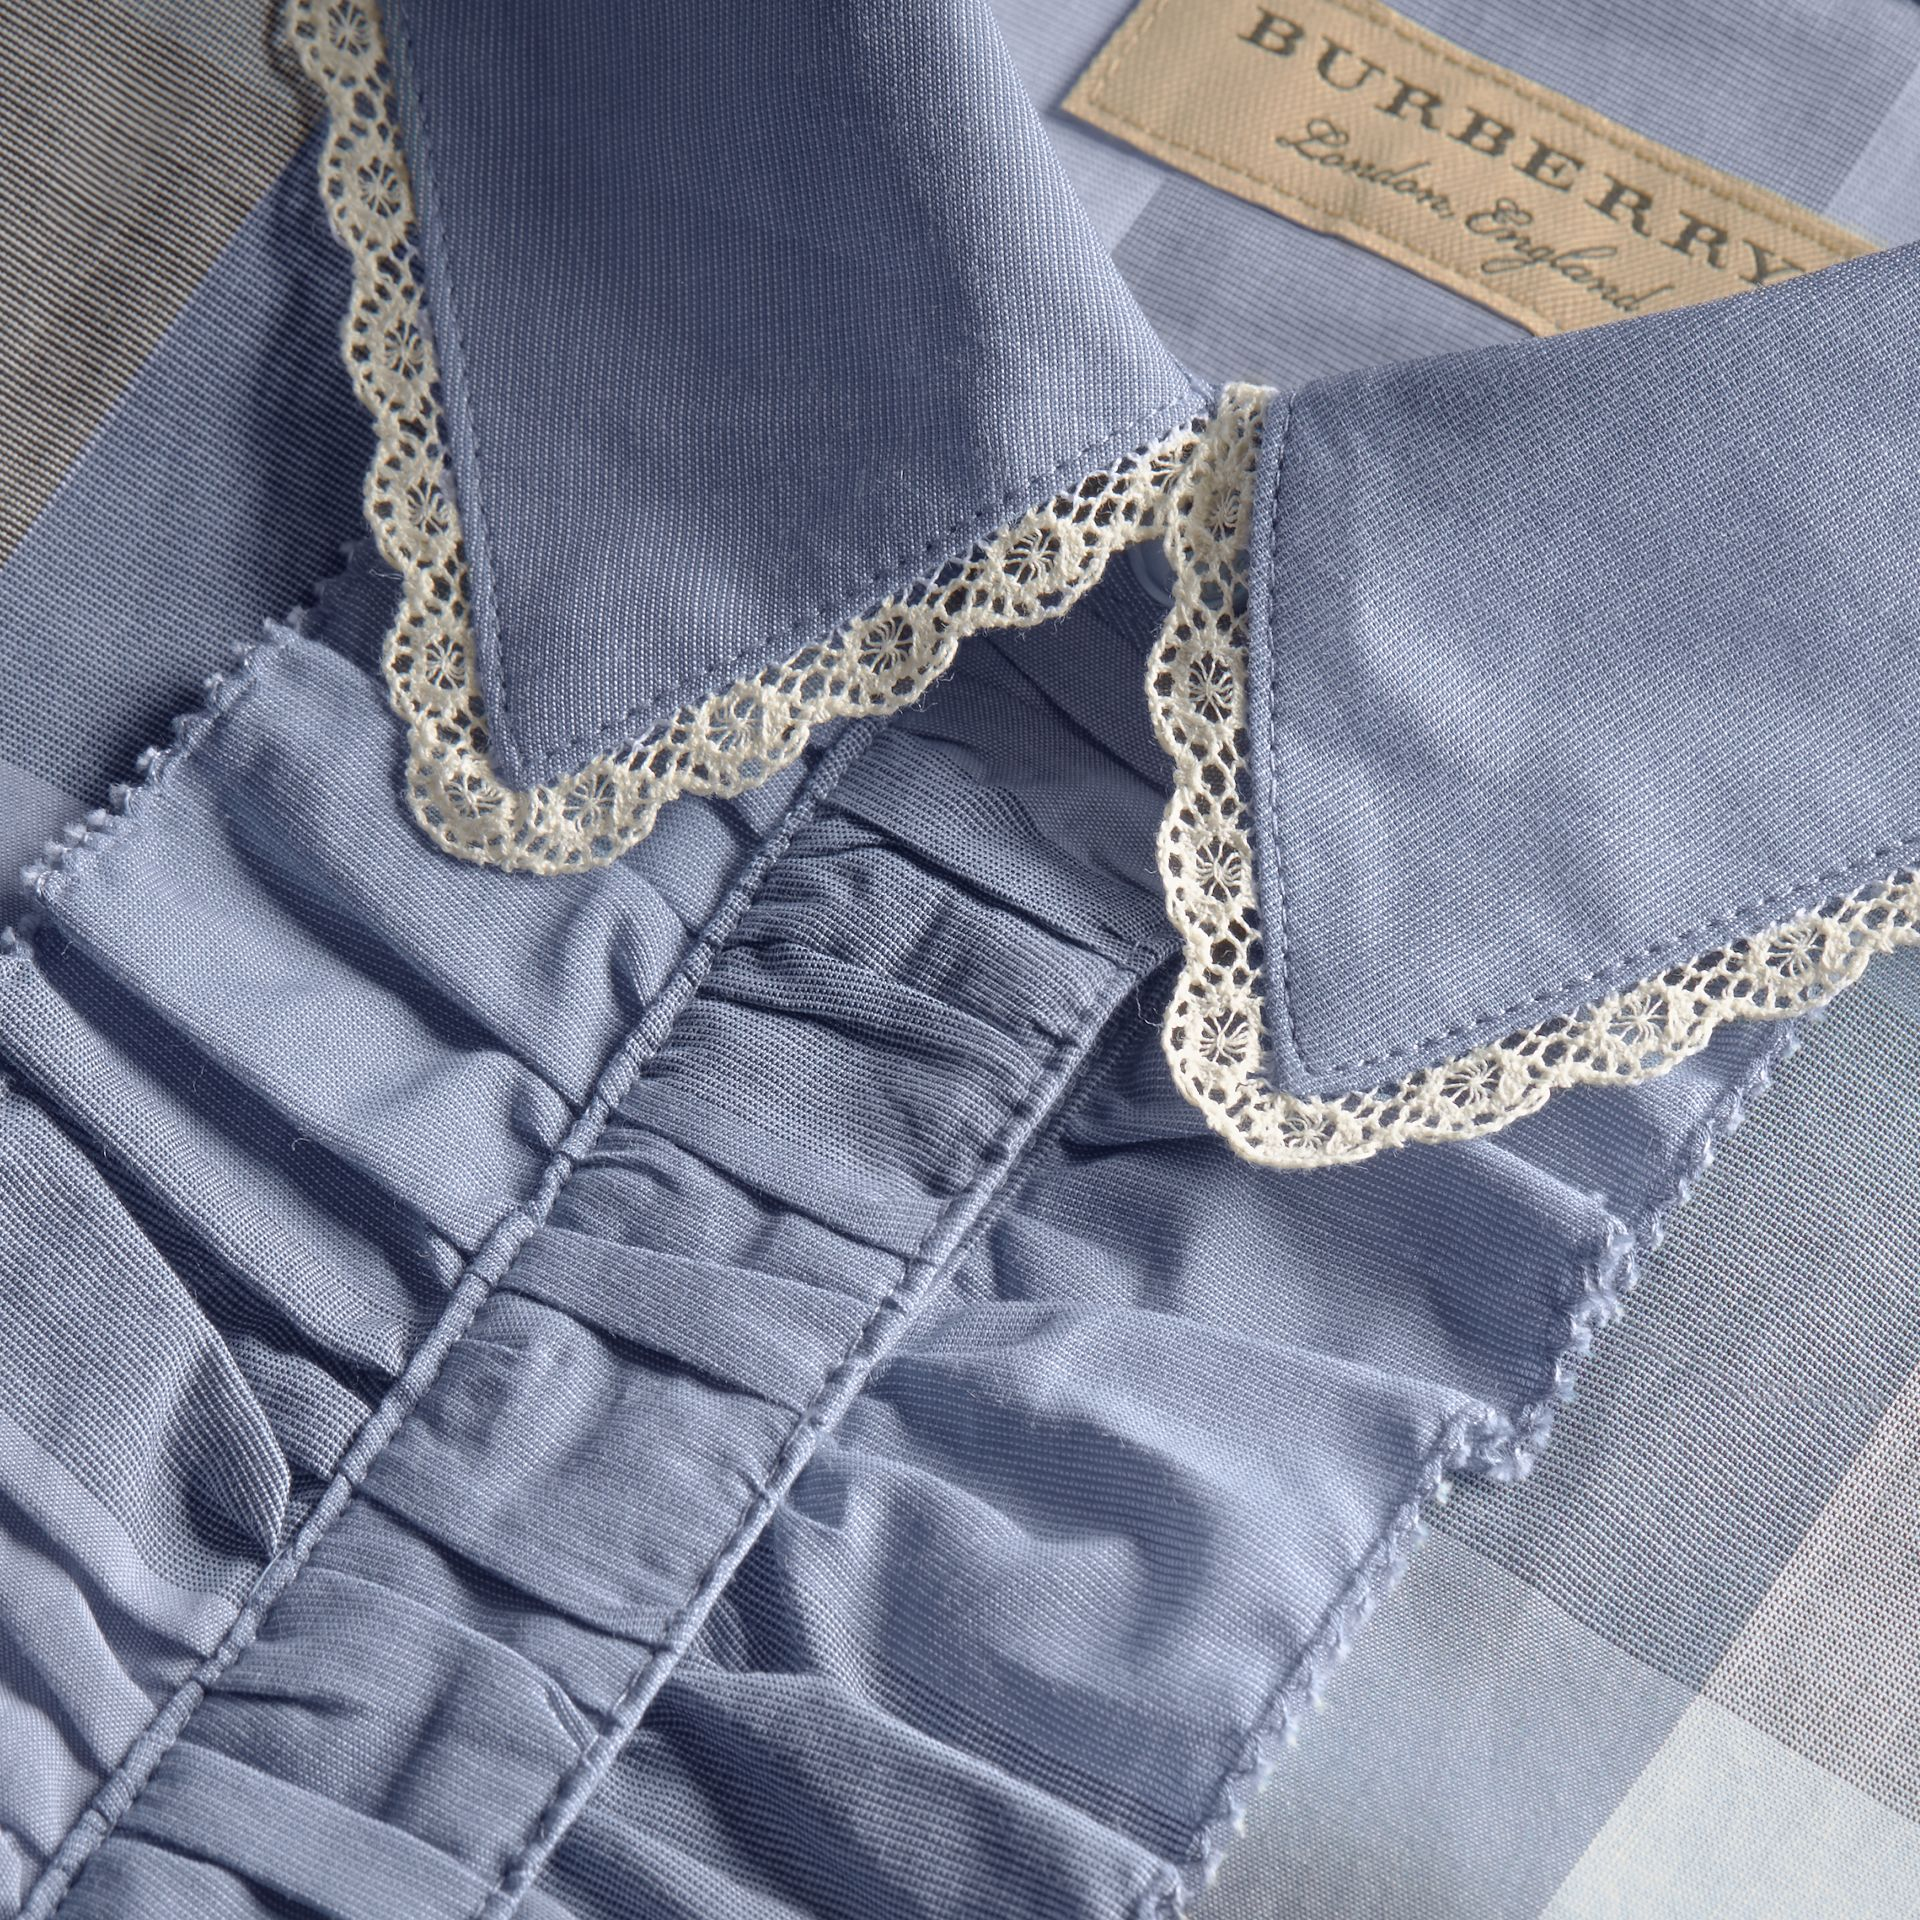 Ruffle Detail and Lace Trim Check Cotton Shirt in Canvas Blue - Women | Burberry - gallery image 2